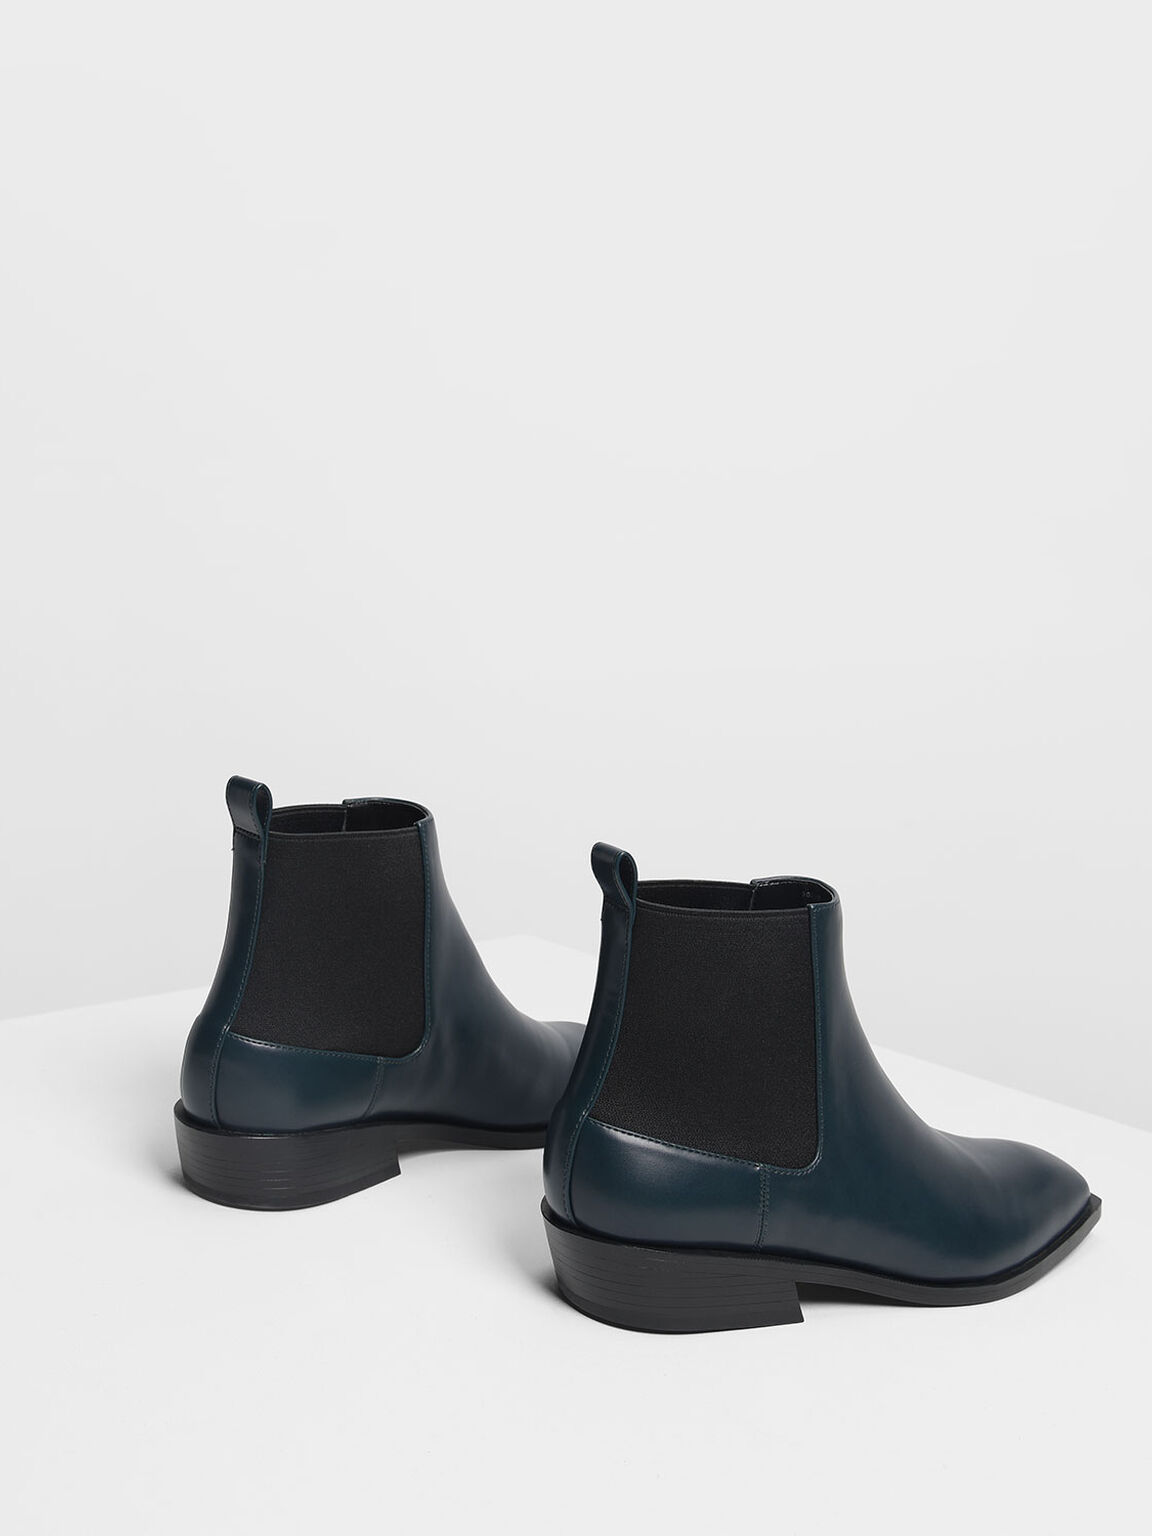 Classic Ankle Boots, Teal, hi-res